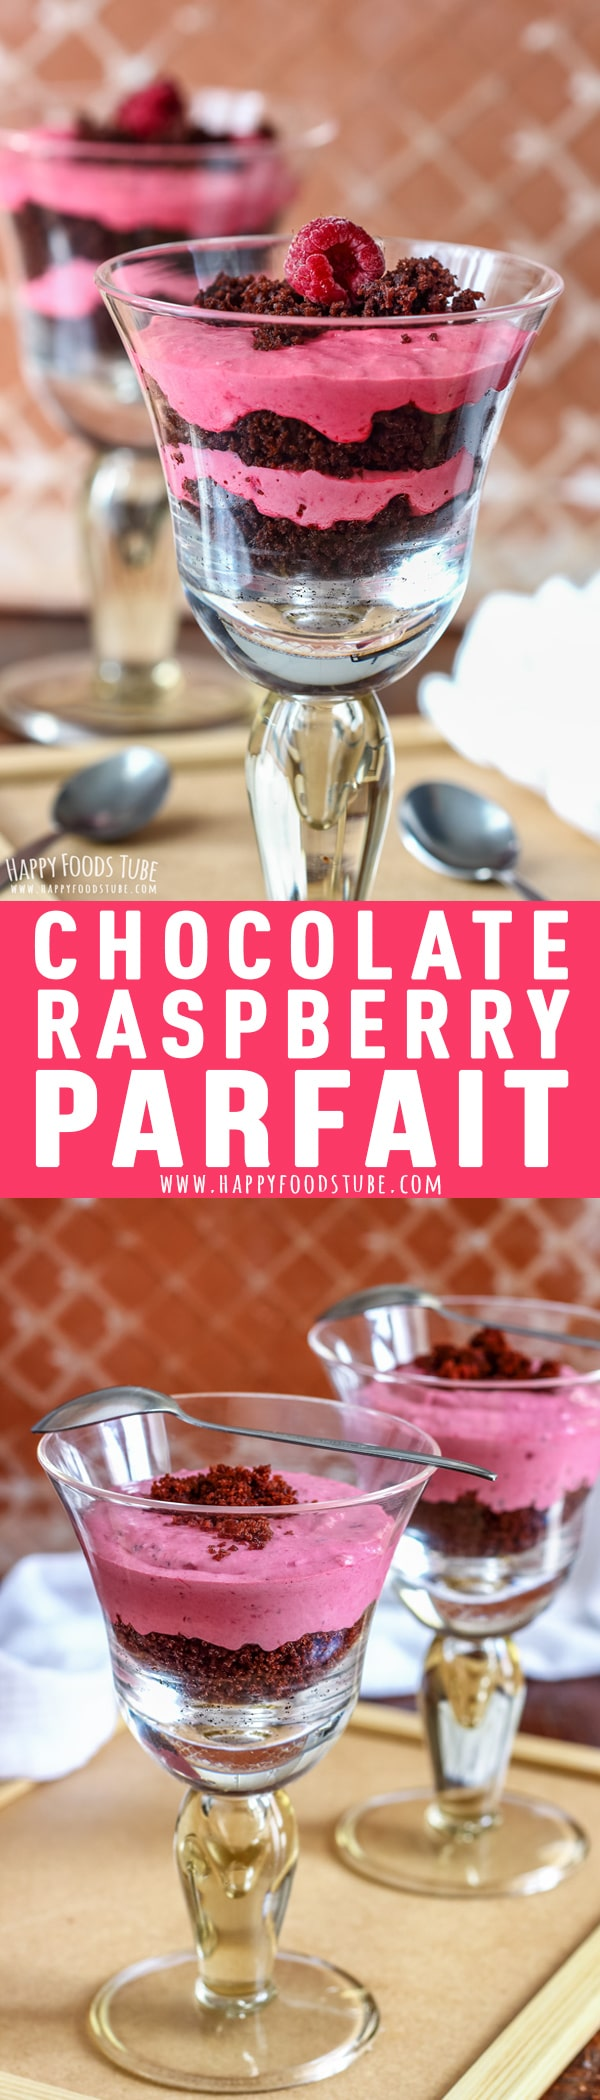 Chocolate Raspberry Parfait is an easy dessert that anyone can do. Moist chocolate cake and creamy raspberry mousse layered into glasses will definitely be a hit at your dining table. #chocolate #raspberry #parfait #dessert #recipe #mascarpone #valentinesday